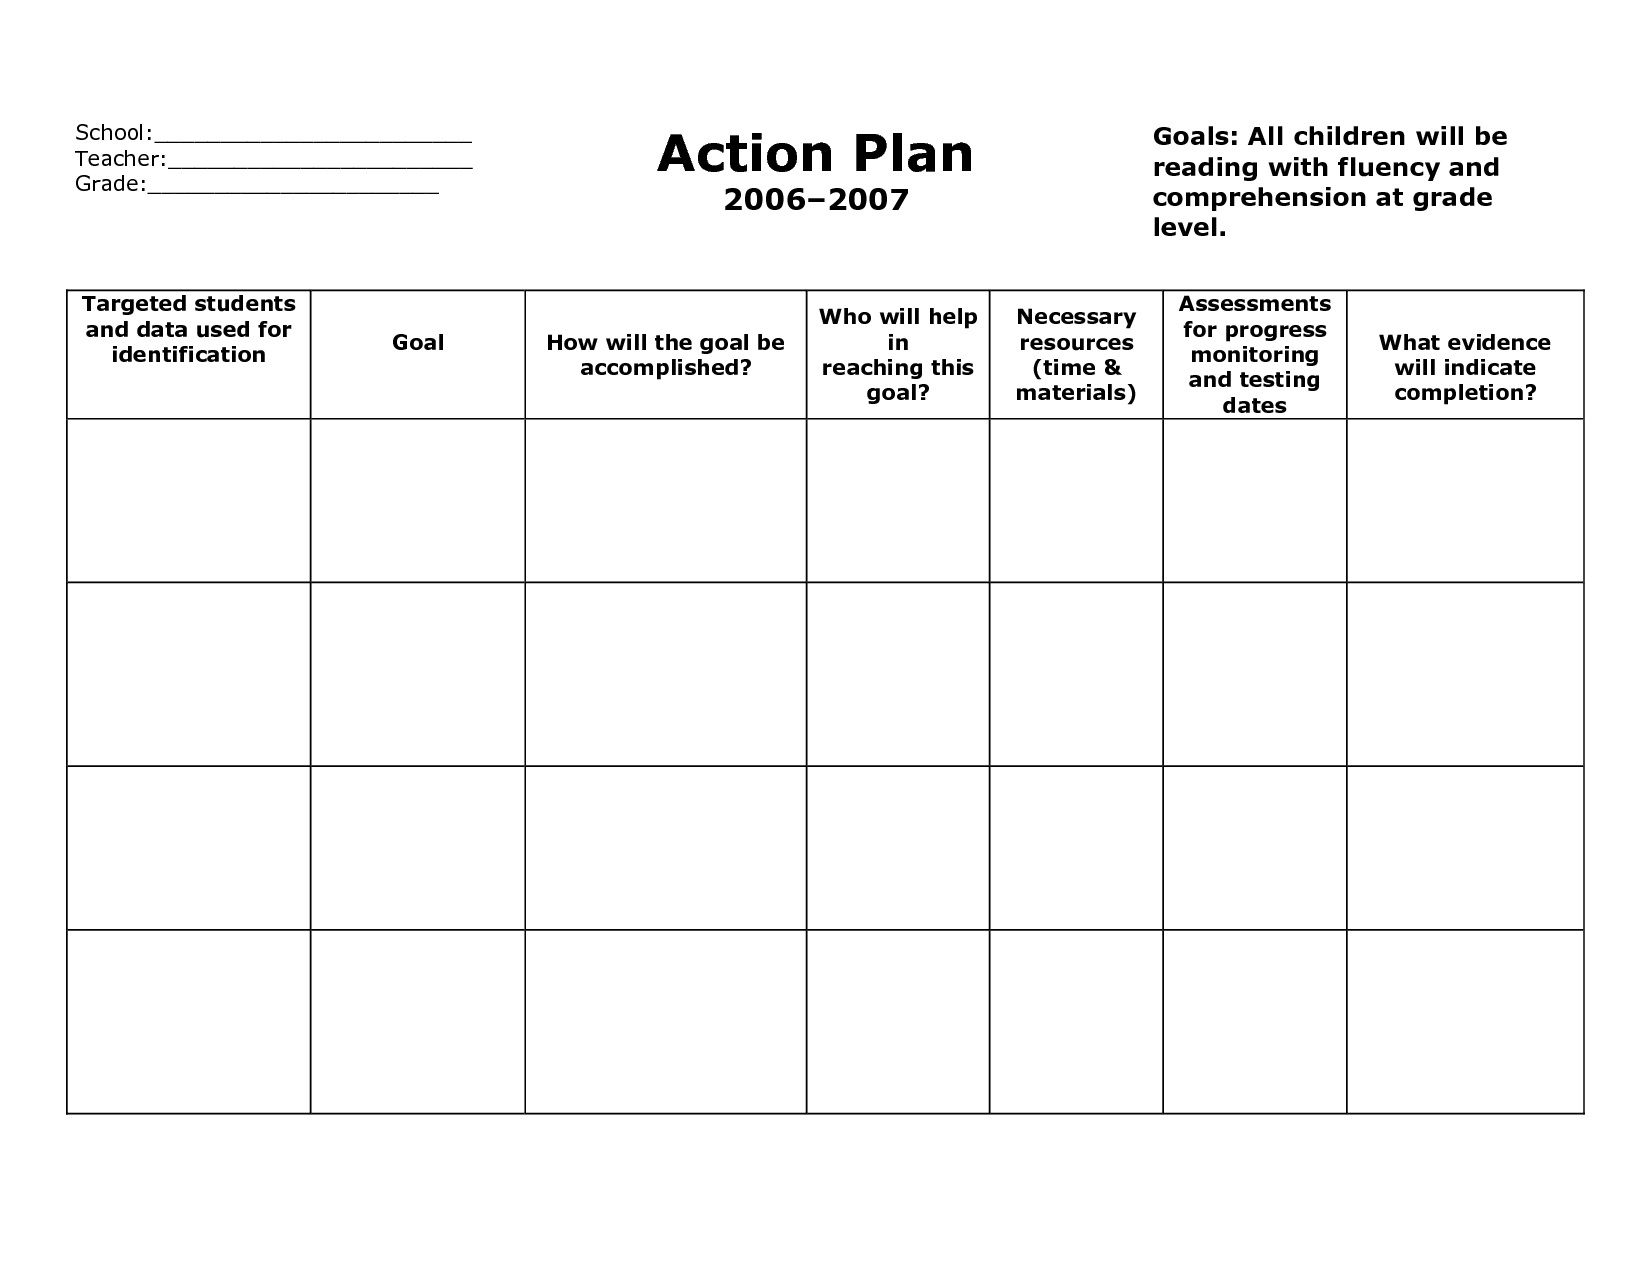 007 Stupendou School Improvement Planning Template Image  Templates Plan Sample Deped 2016 Example South AfricaFull